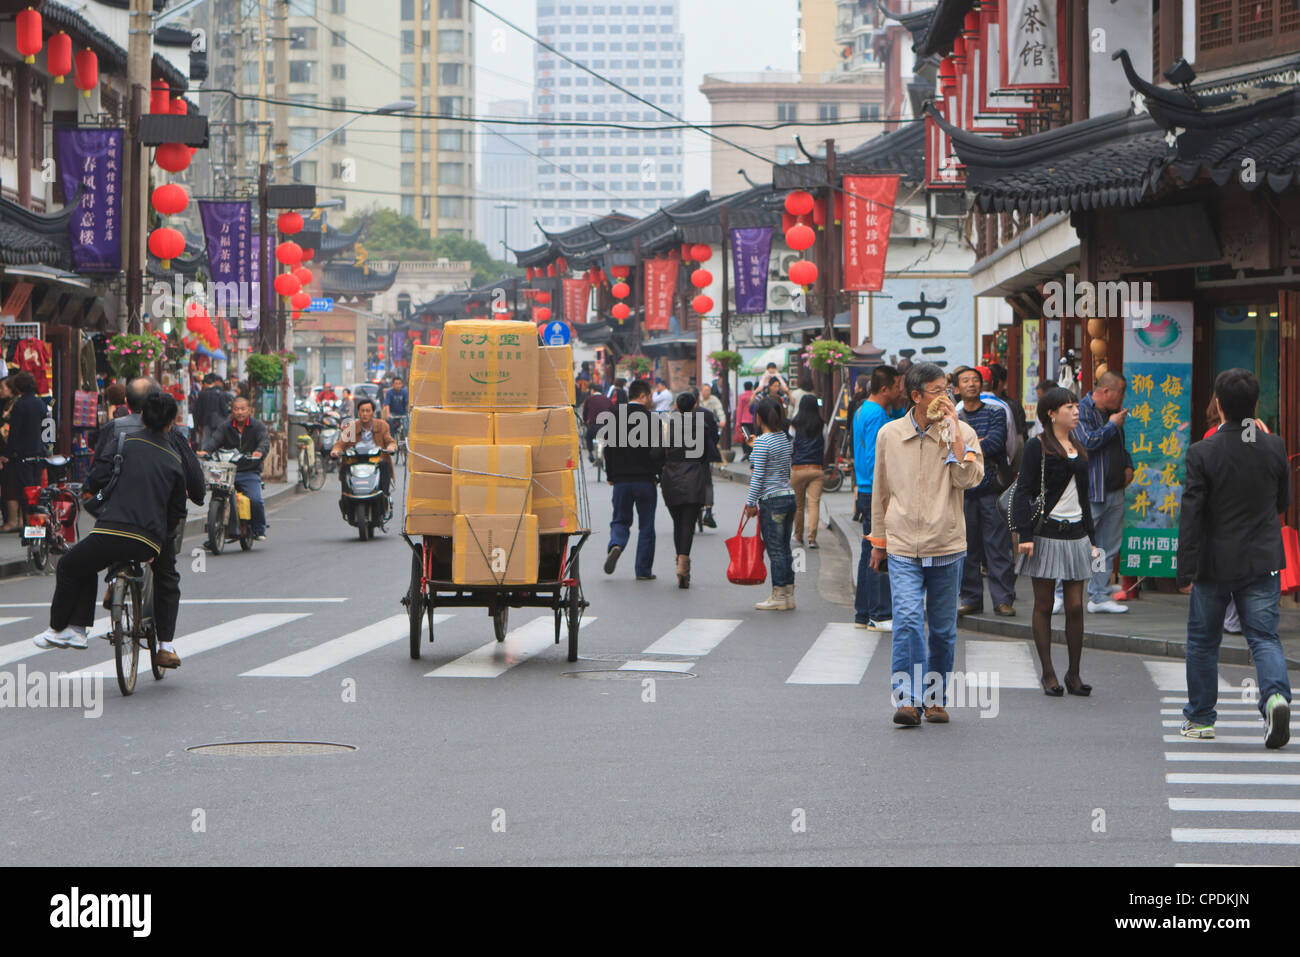 Pedestrians and traffic on Shanghai Old Street, remnant of a bygone age, Fuxing, Shanghai, China, Asia - Stock Image